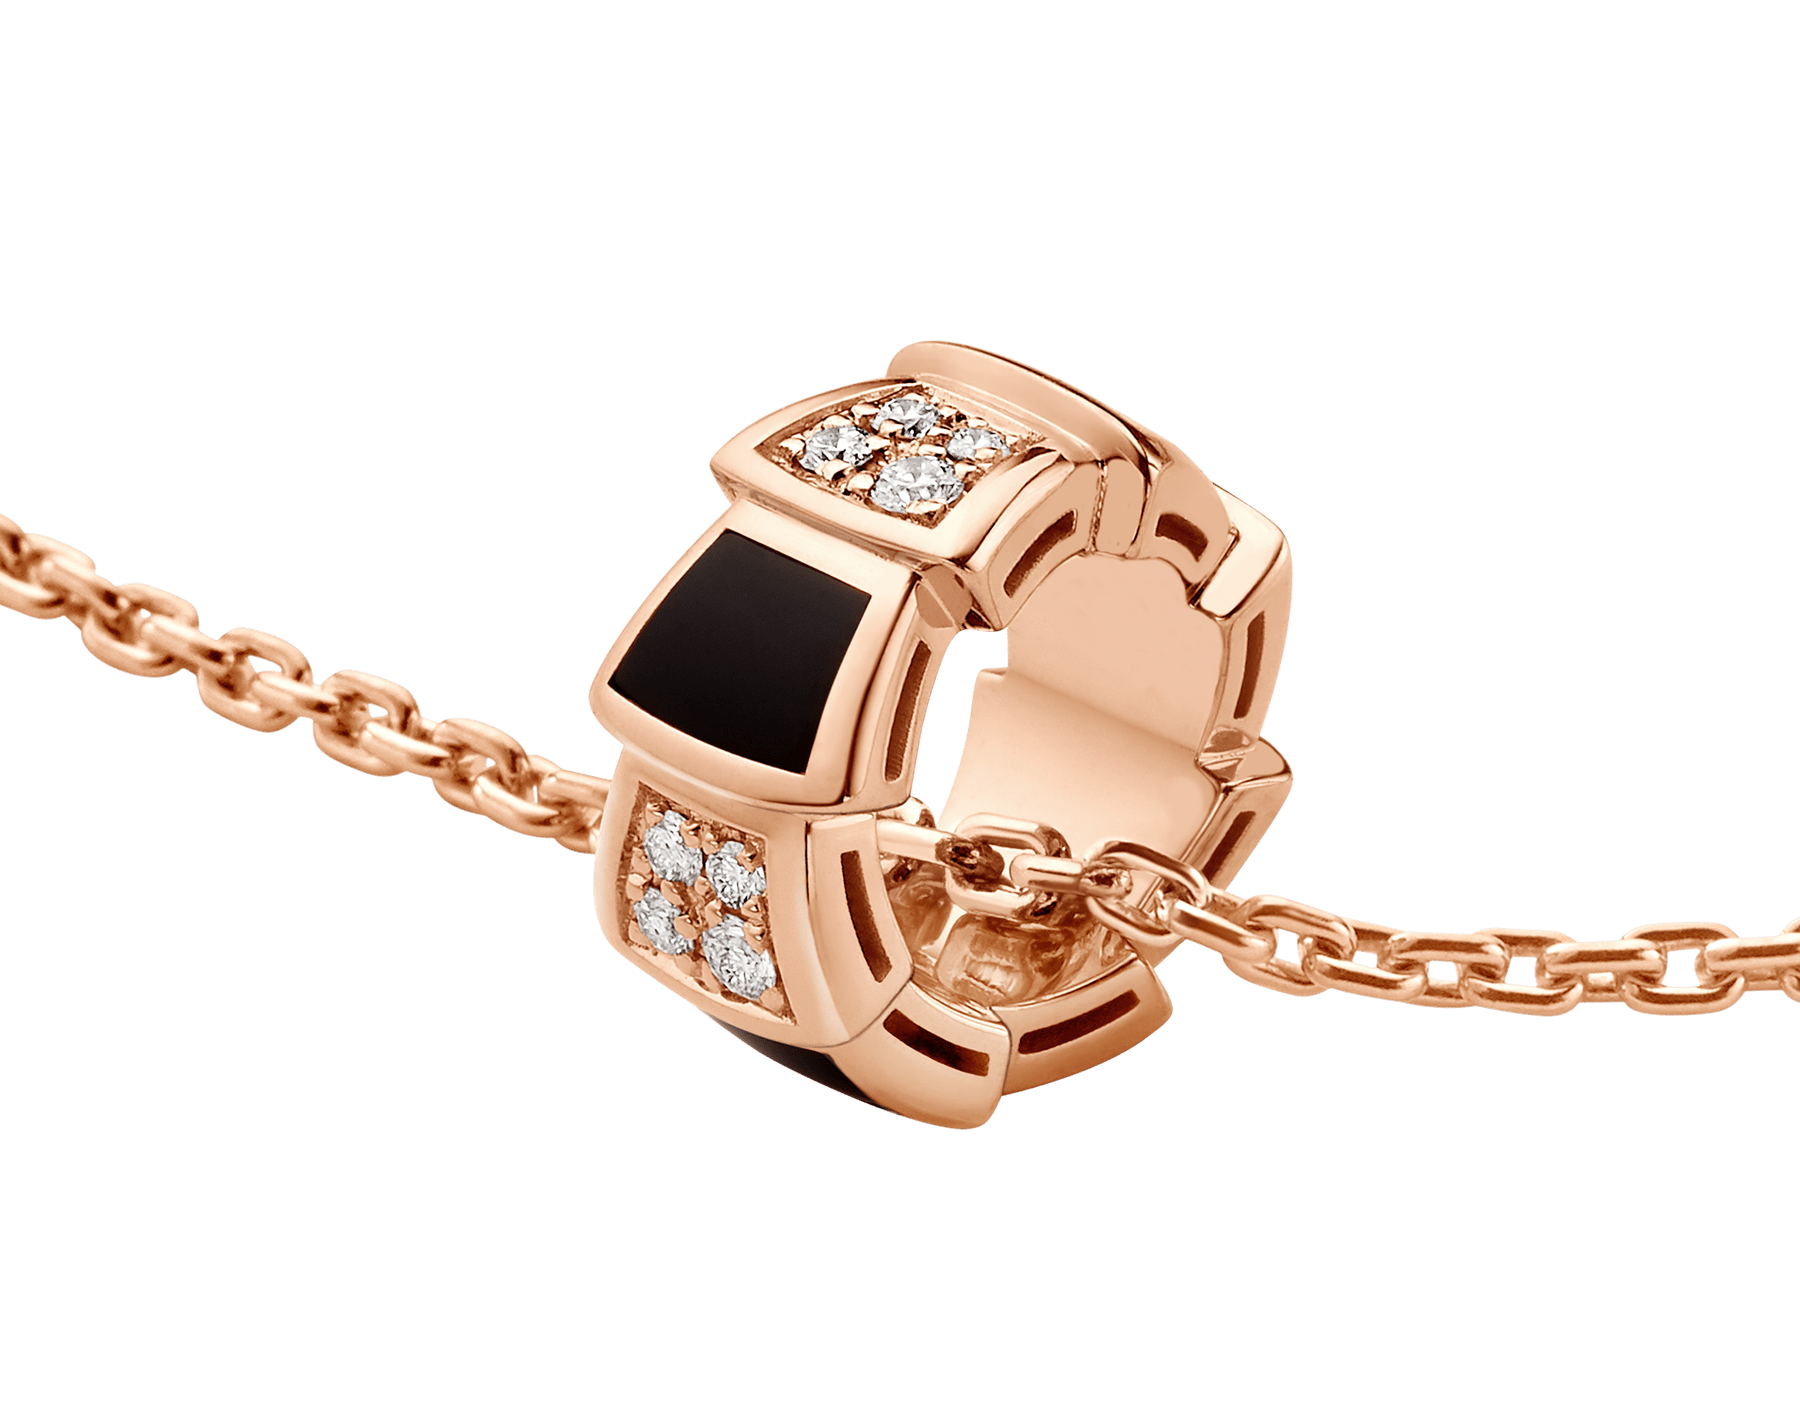 Serpenti Viper 18 kt rose gold necklace set with onyx elements and pavé diamonds on the pendant. 356554 image 3